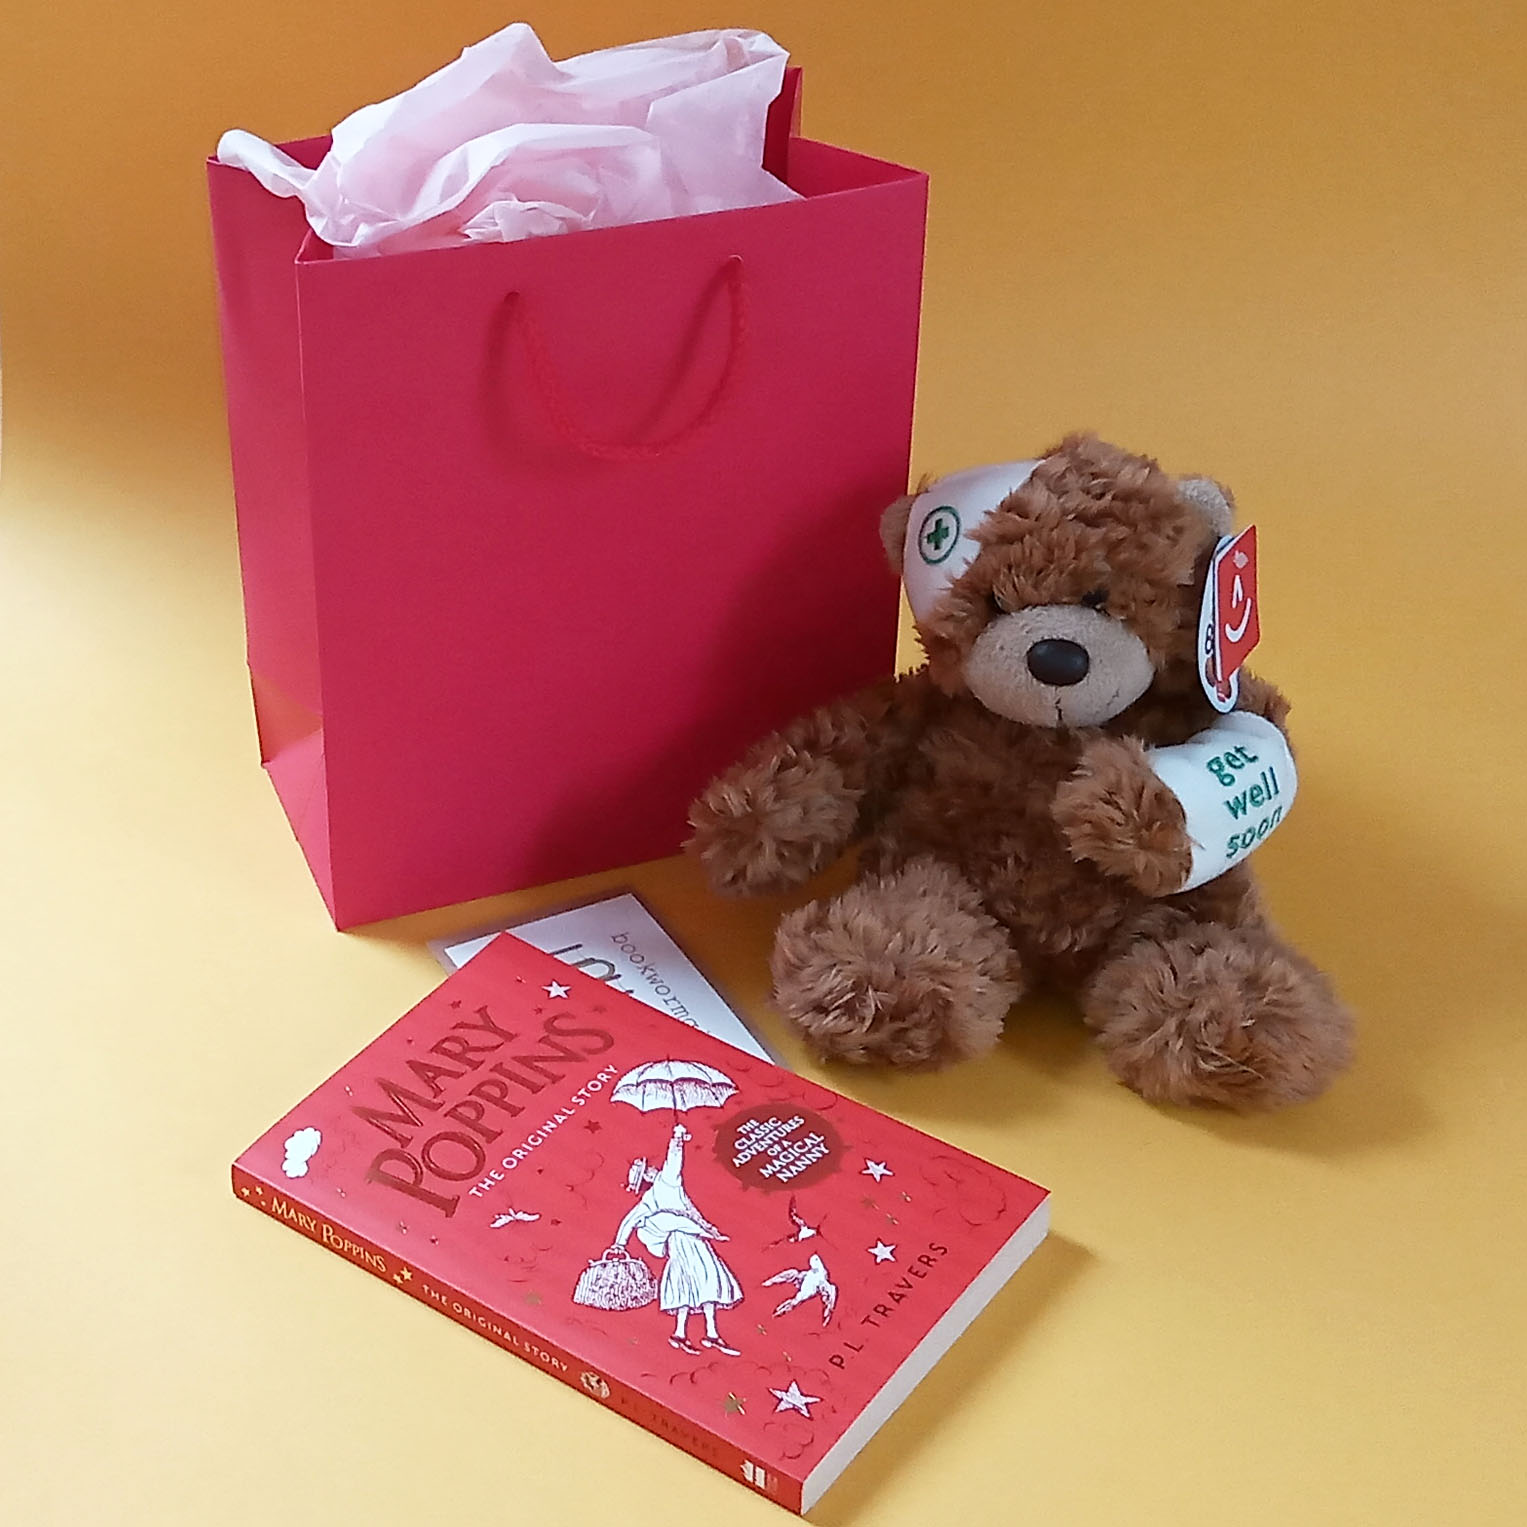 Hospital gift ideas for little girls